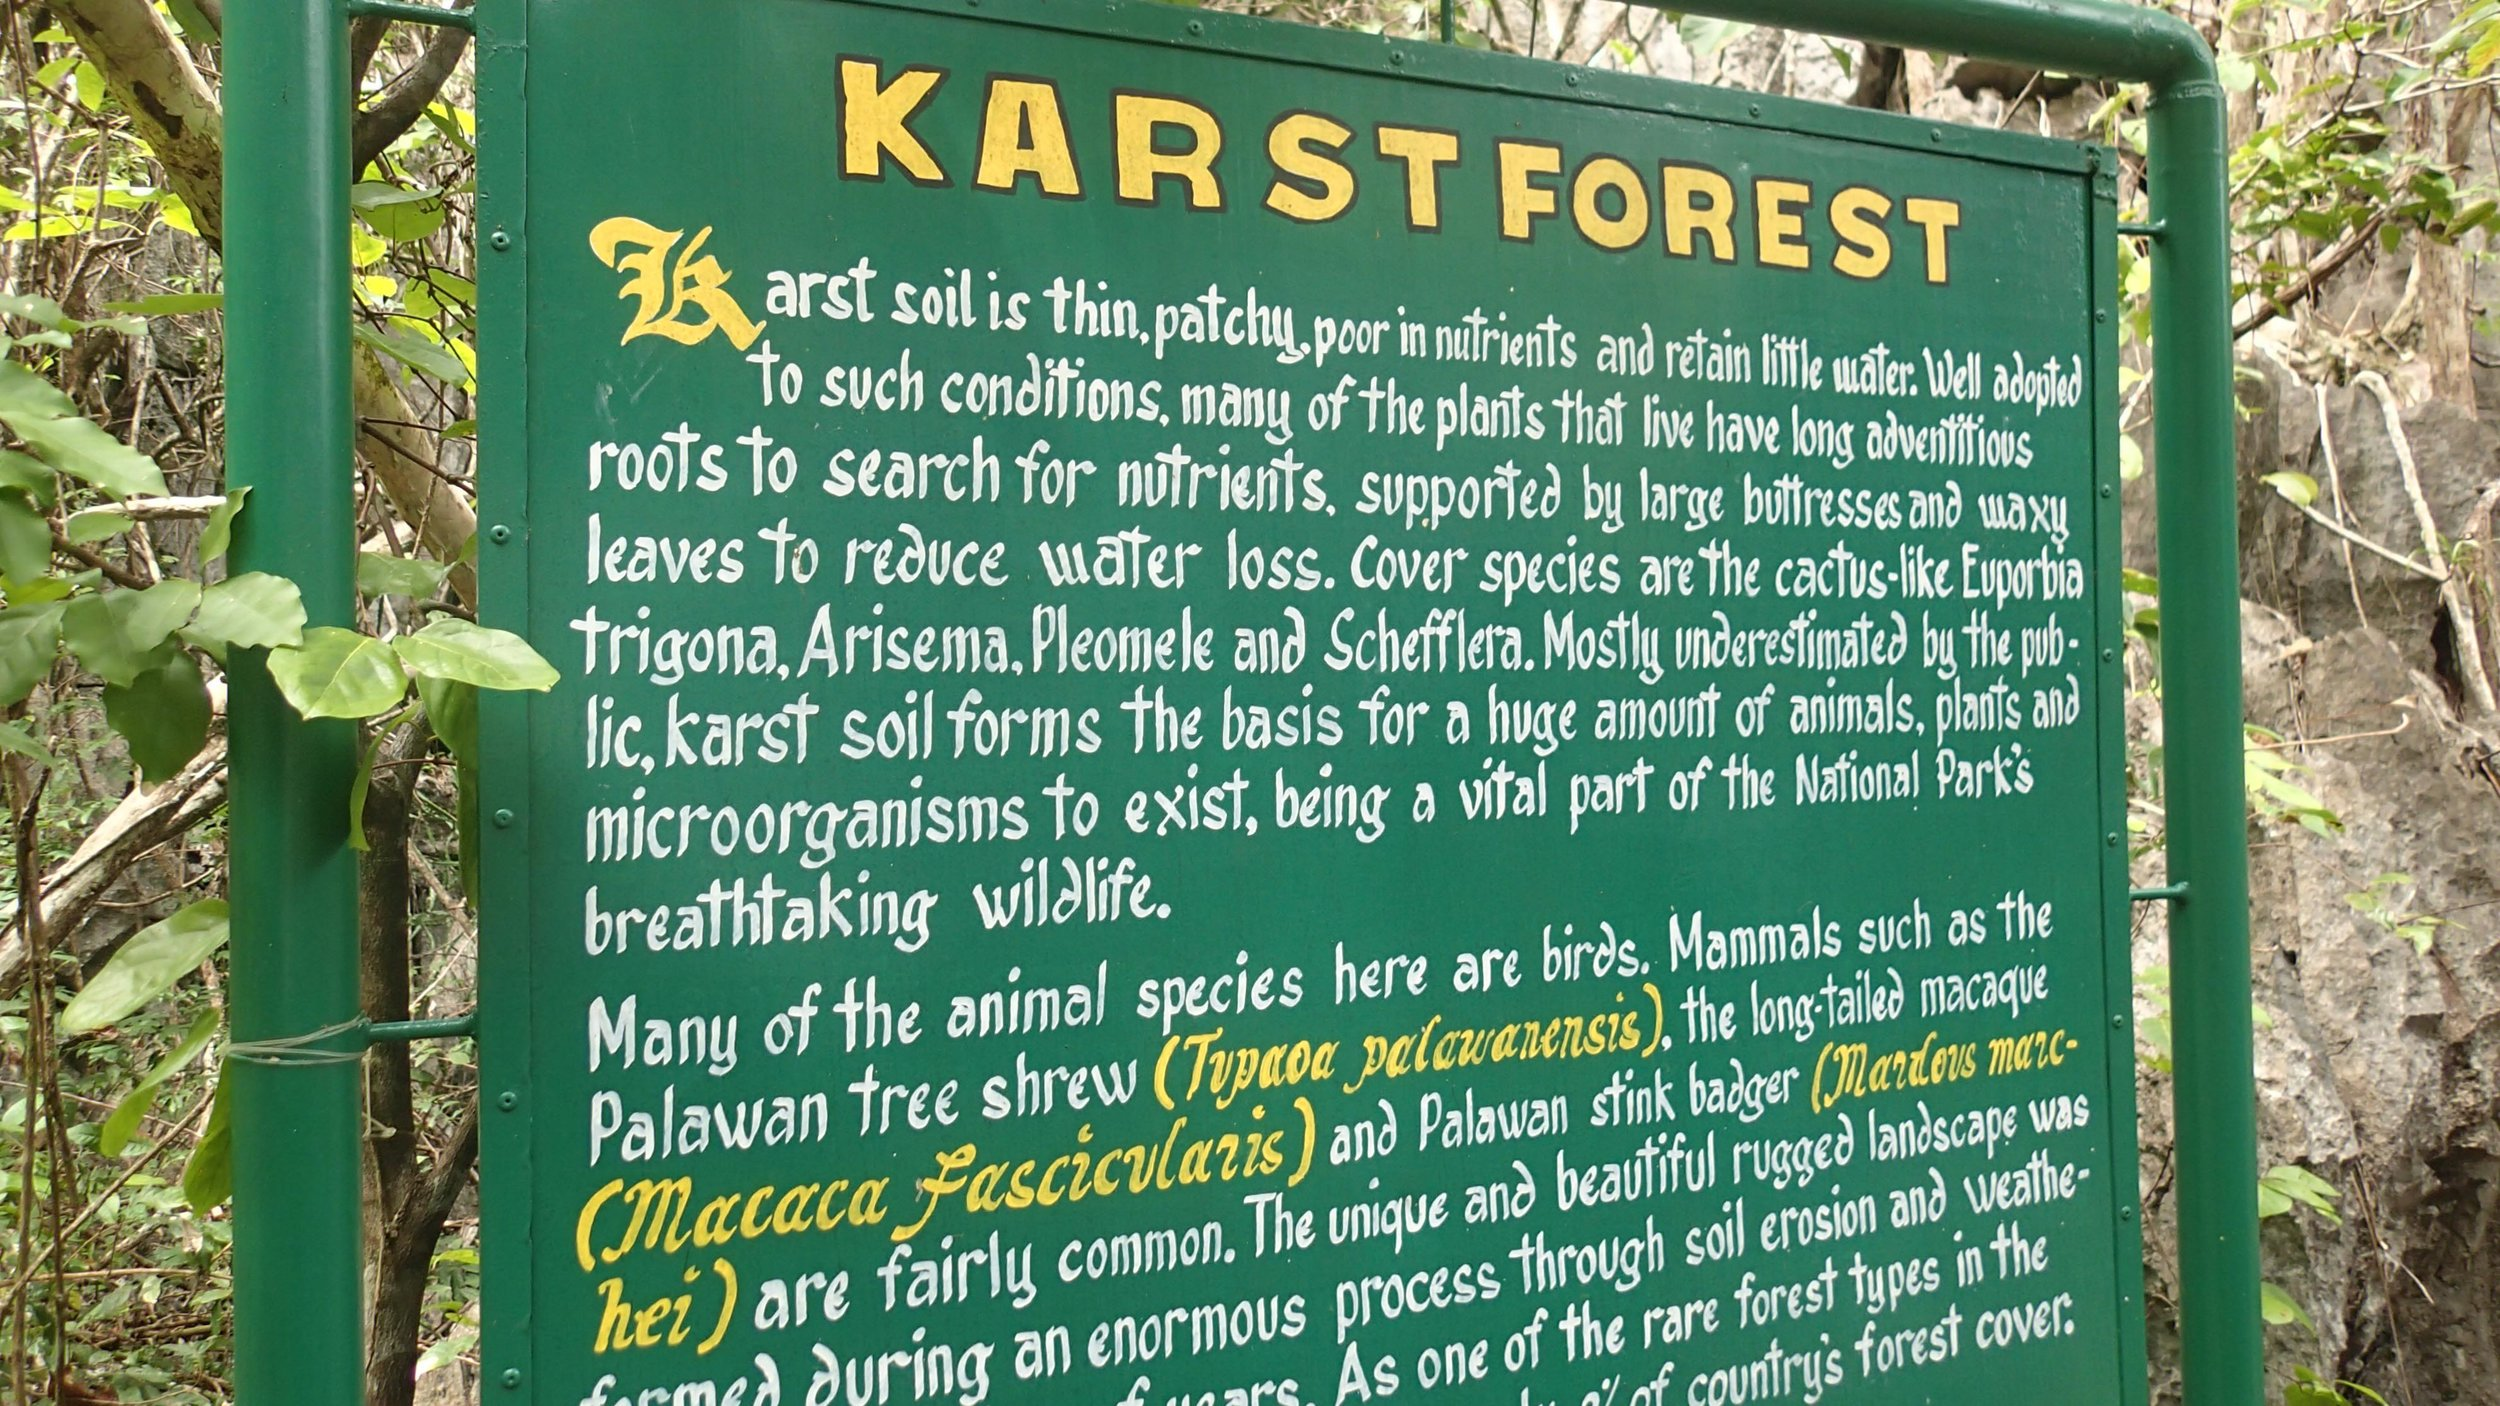 karst forest sign.jpg